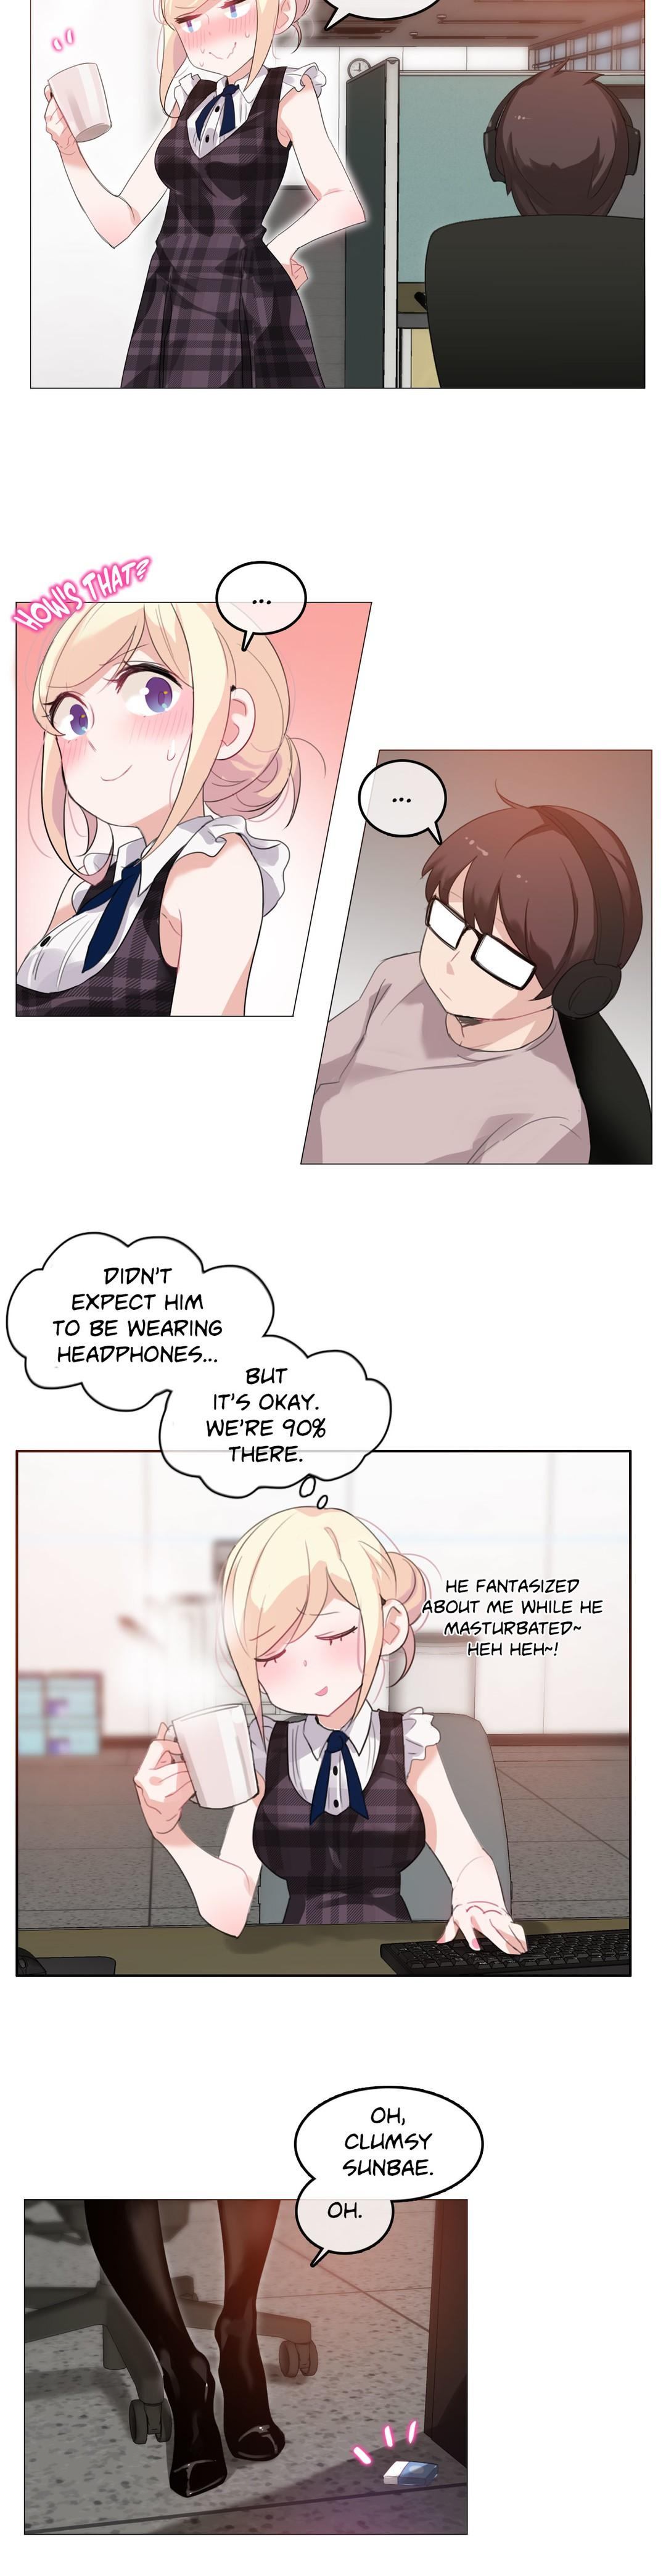 A Pervert's Daily Life Ch. 1-34 371